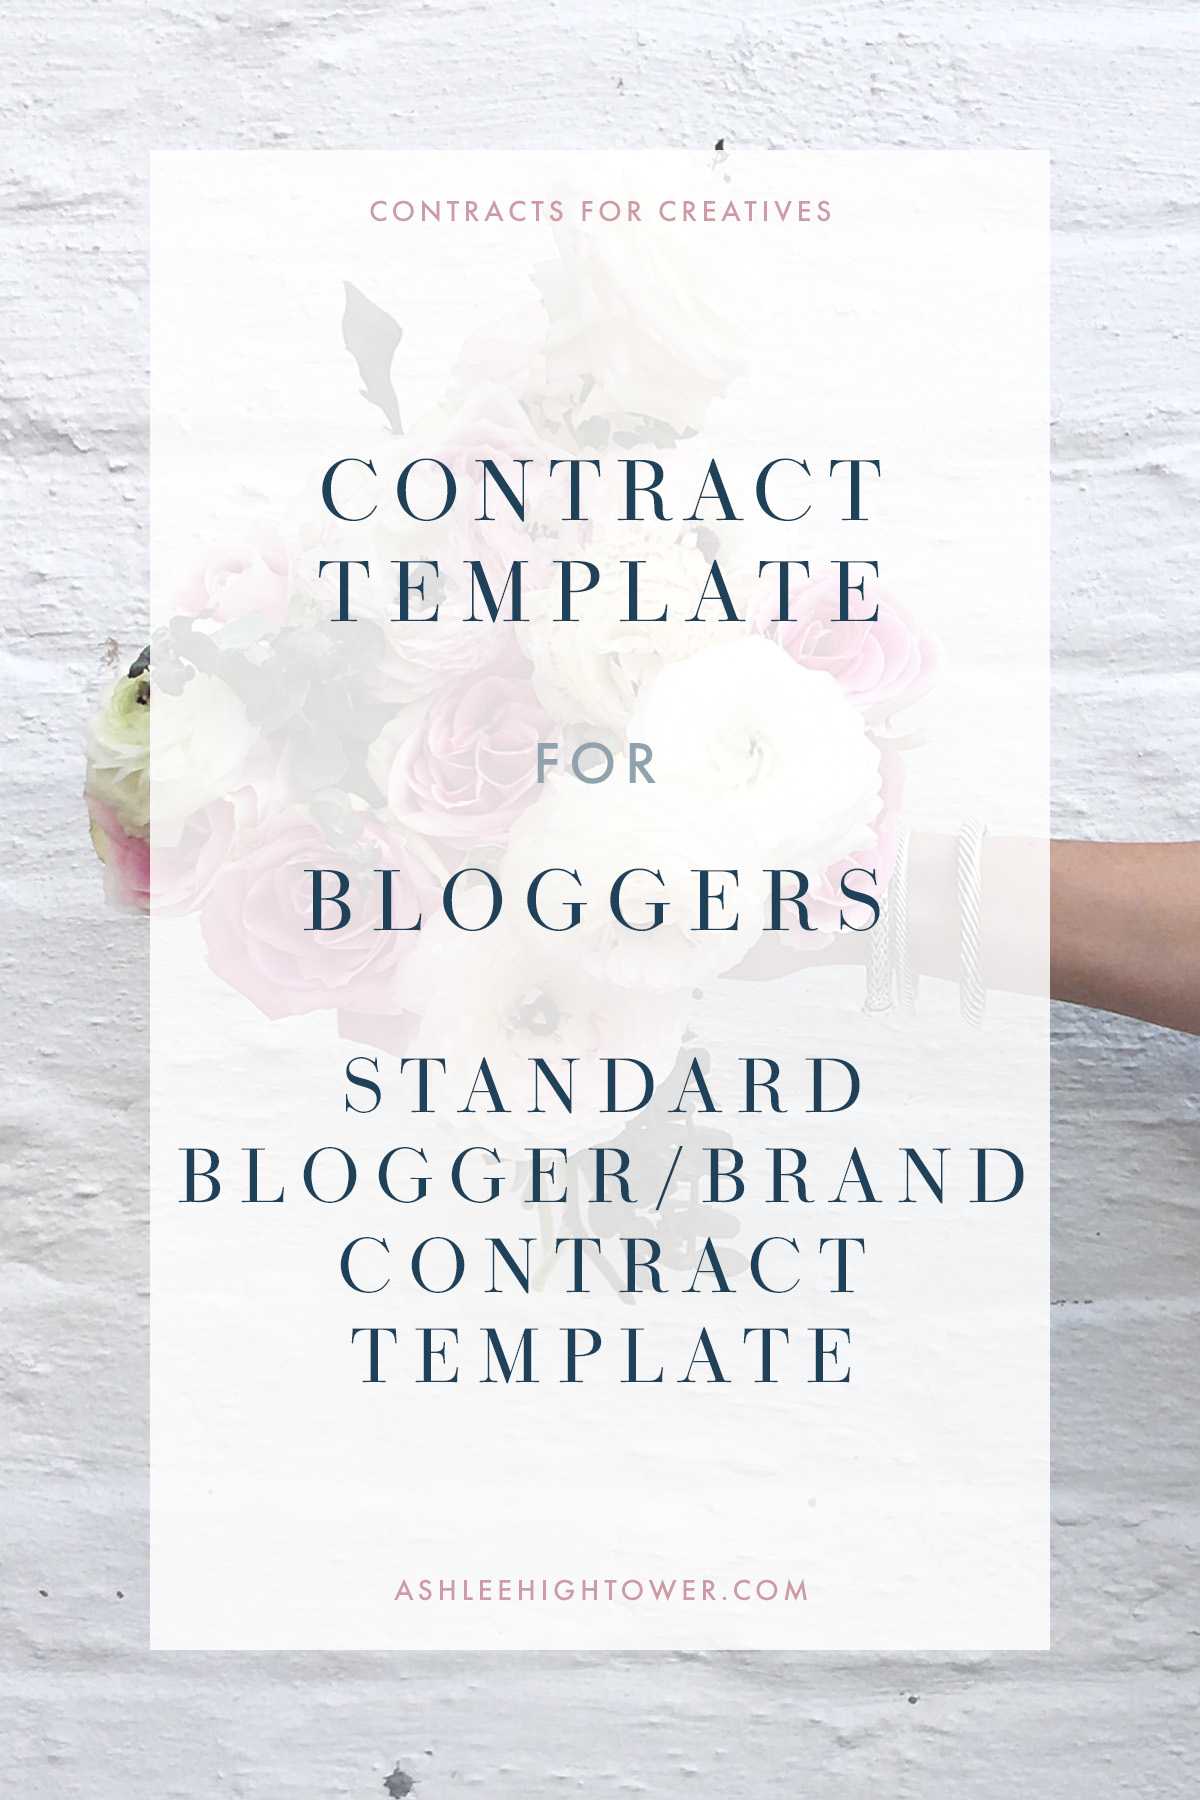 Contracts for Creatives | Contract Template | Contract Bloggers by attorney Ashlee Hightower